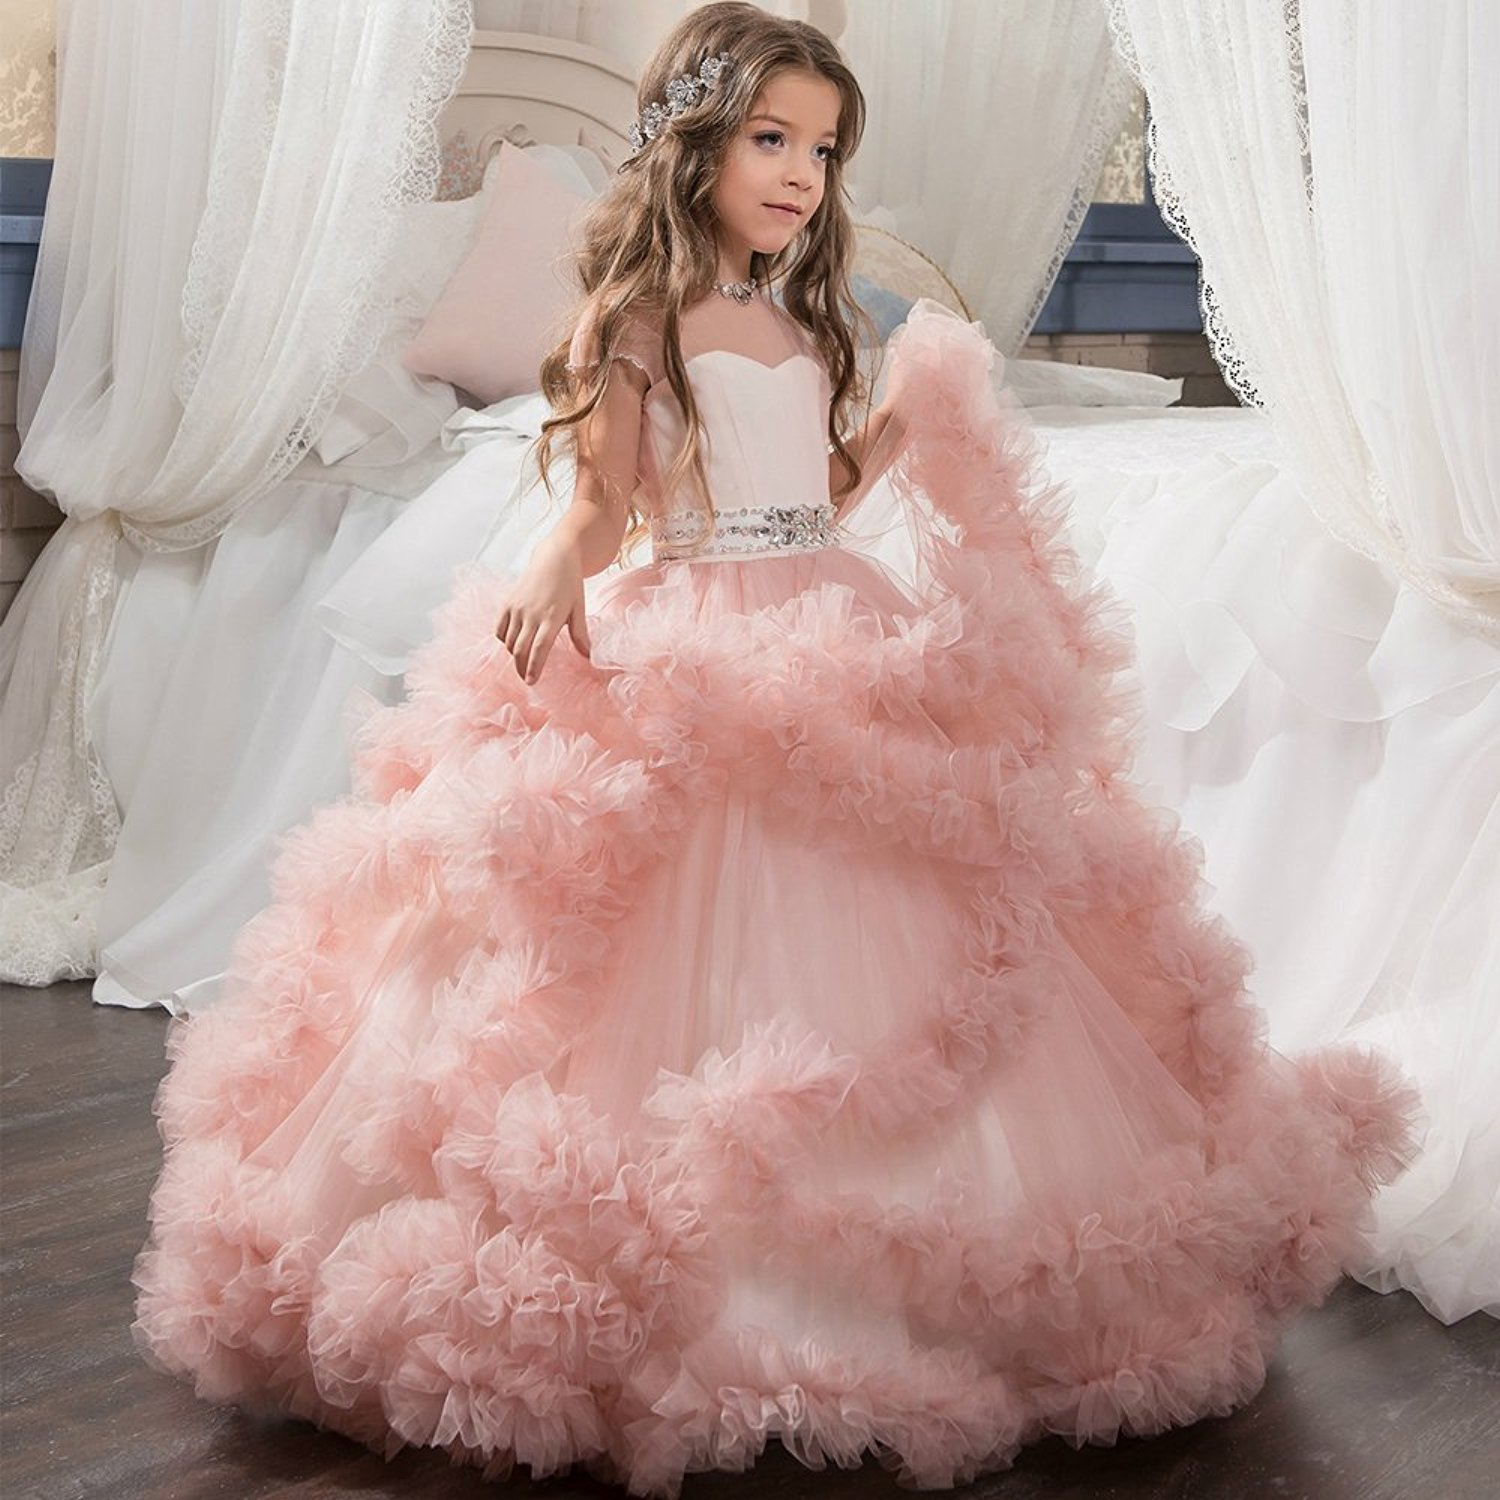 2018 Puffy Flower Girls Dresses for Weddings Lace Beaded Little Kids First Communion Dress With Bow Custom Made 3 10 12 13 Size new puffy girls dress white ivory lace tulle with sash 2017 custom first communion dress any size